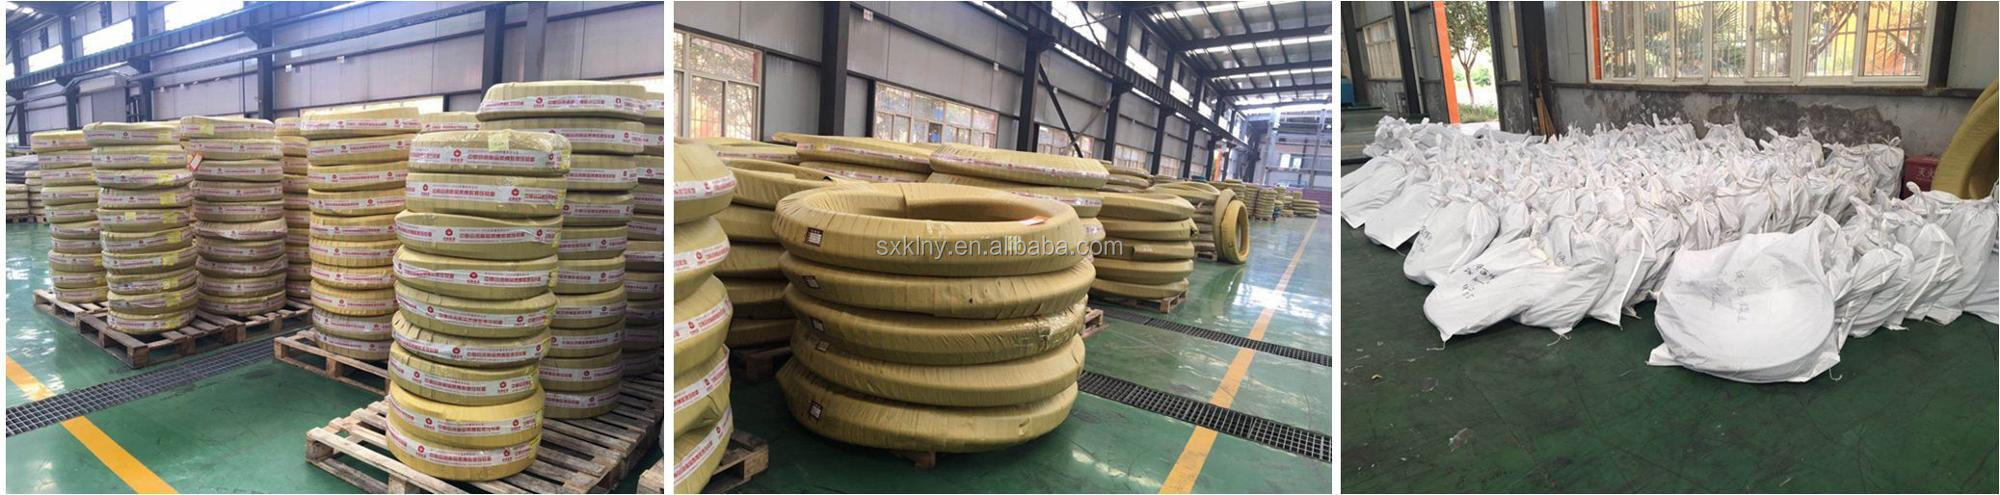 High Quality Oil Resistant Stainless Steel Braid Cover Hydraulic Hose